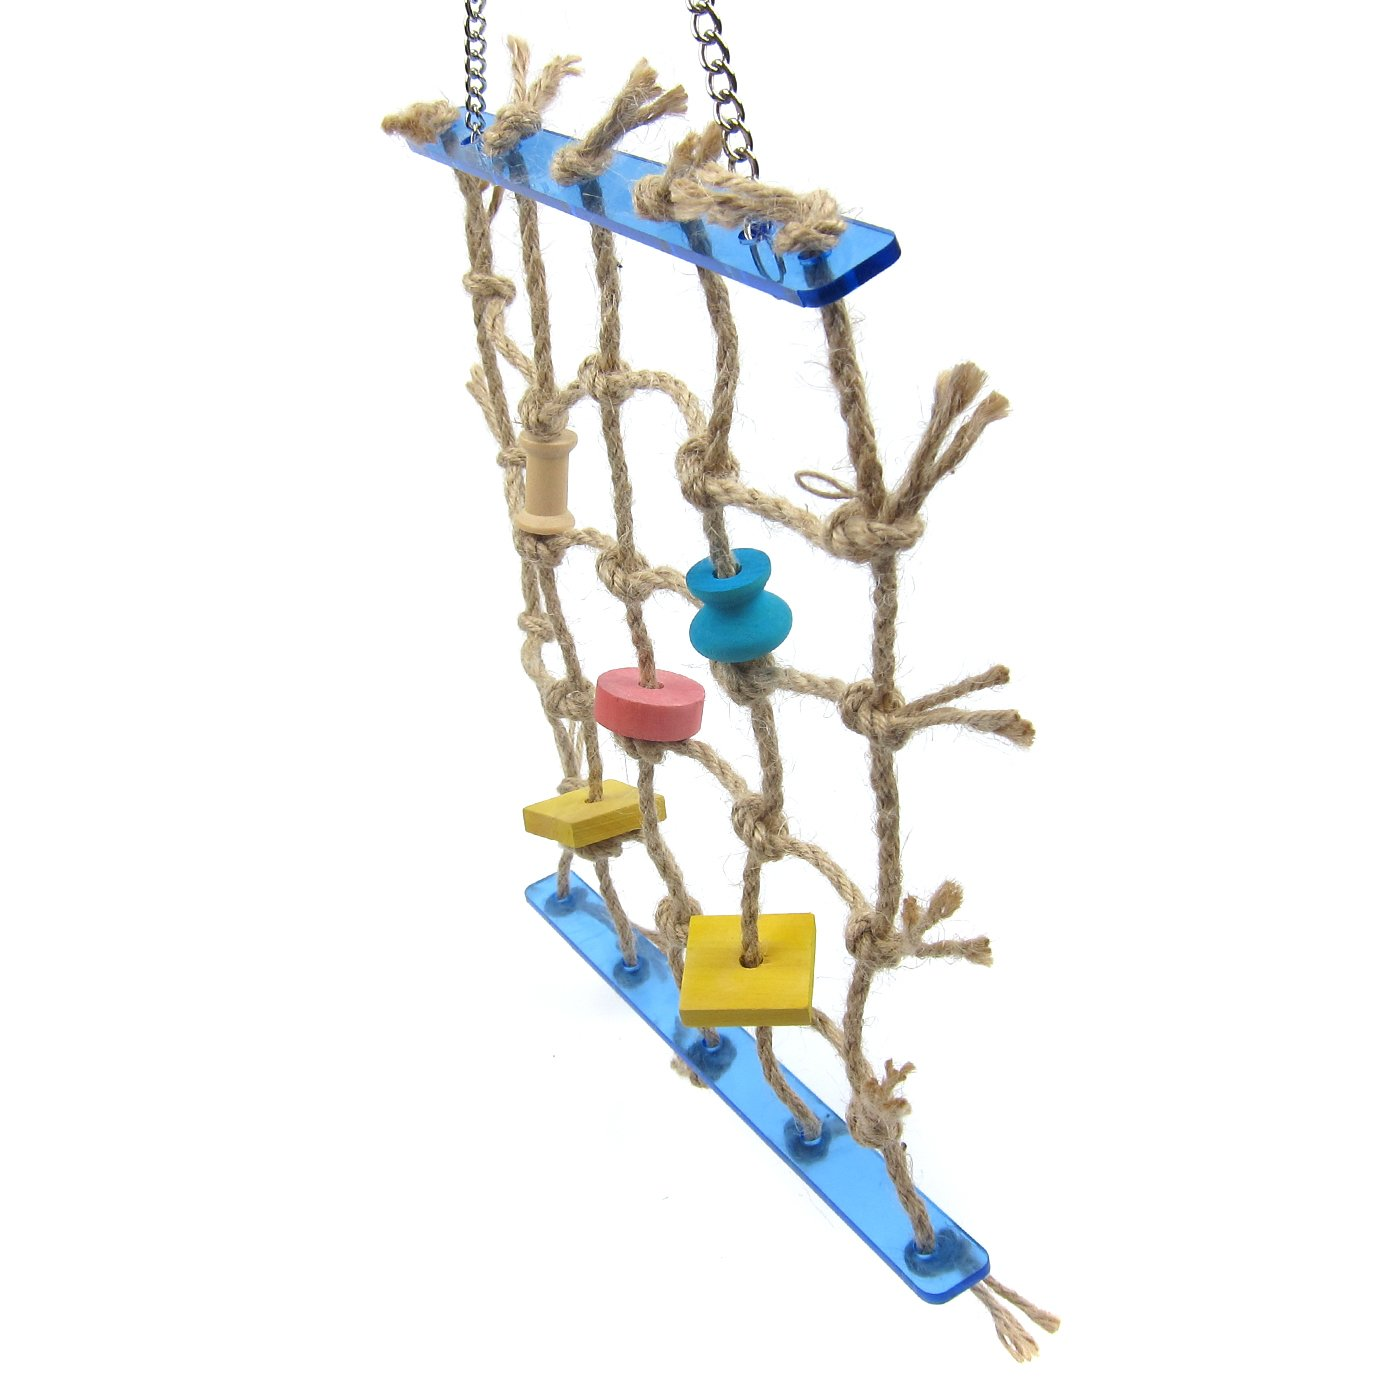 Alfie Pet by Petoga Couture - Kaelin Hanging Rope Ladder Toy for Birds by Alfie (Image #3)